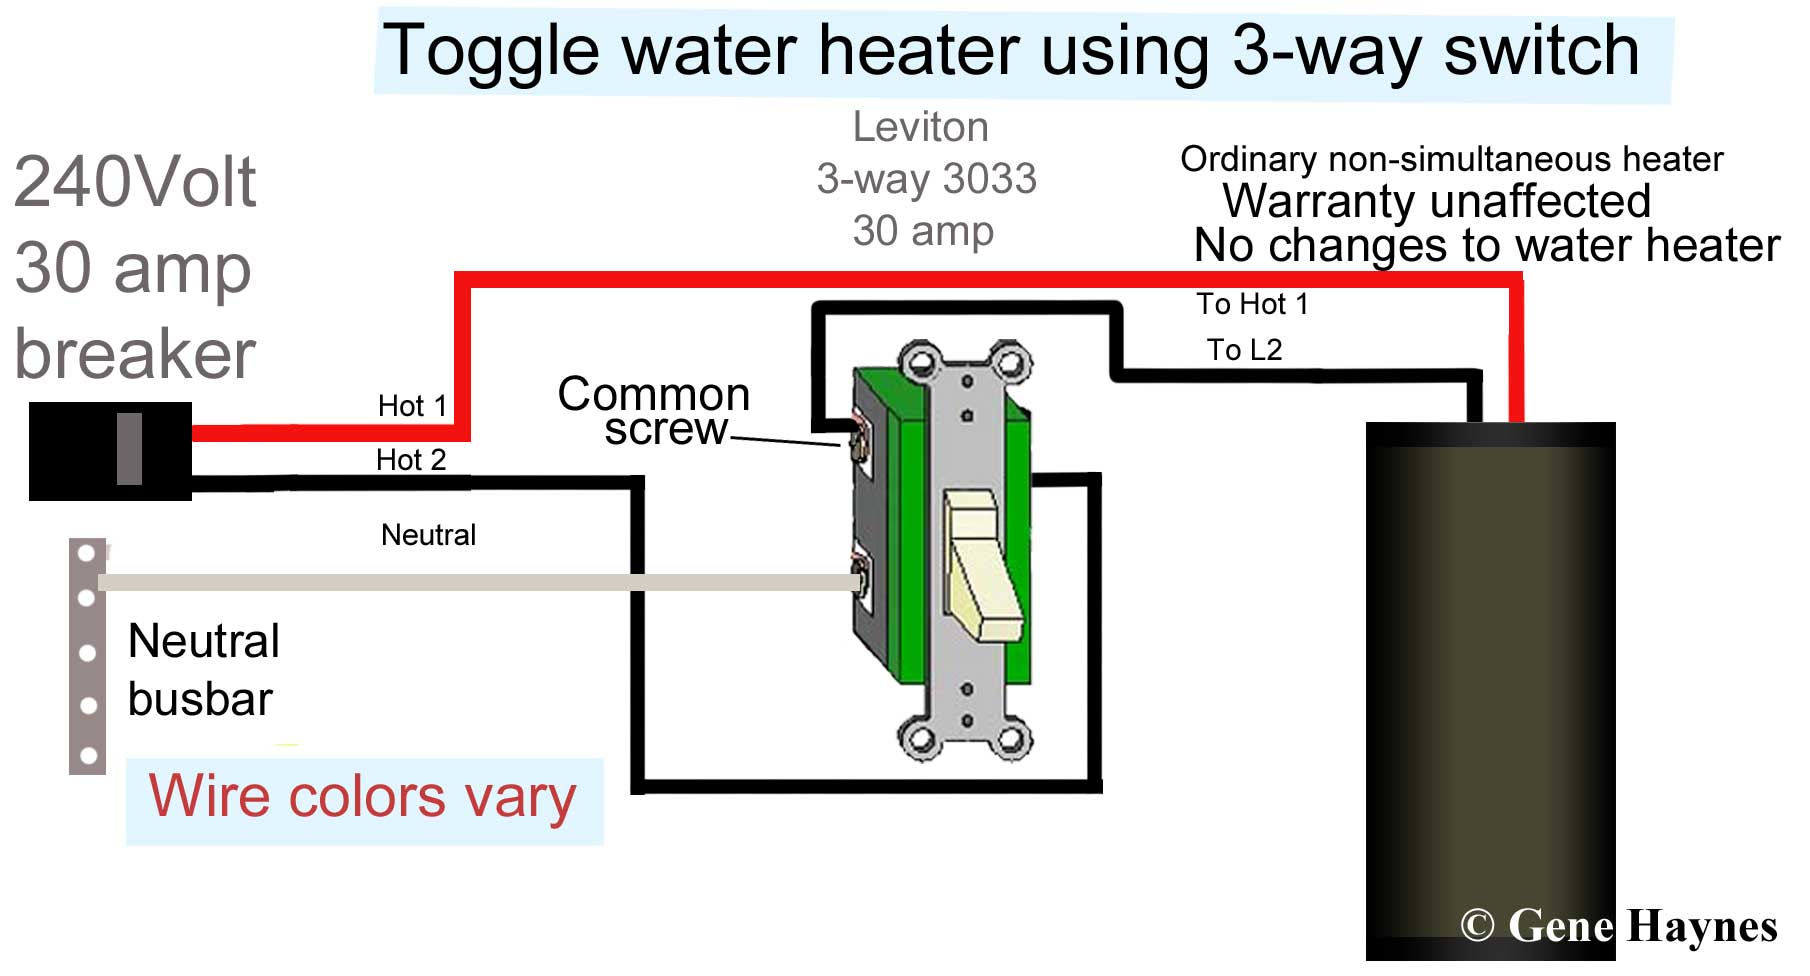 how to wire water heater two switches use 30 amp 3 way switch to toggle water heater between 120v and 240v